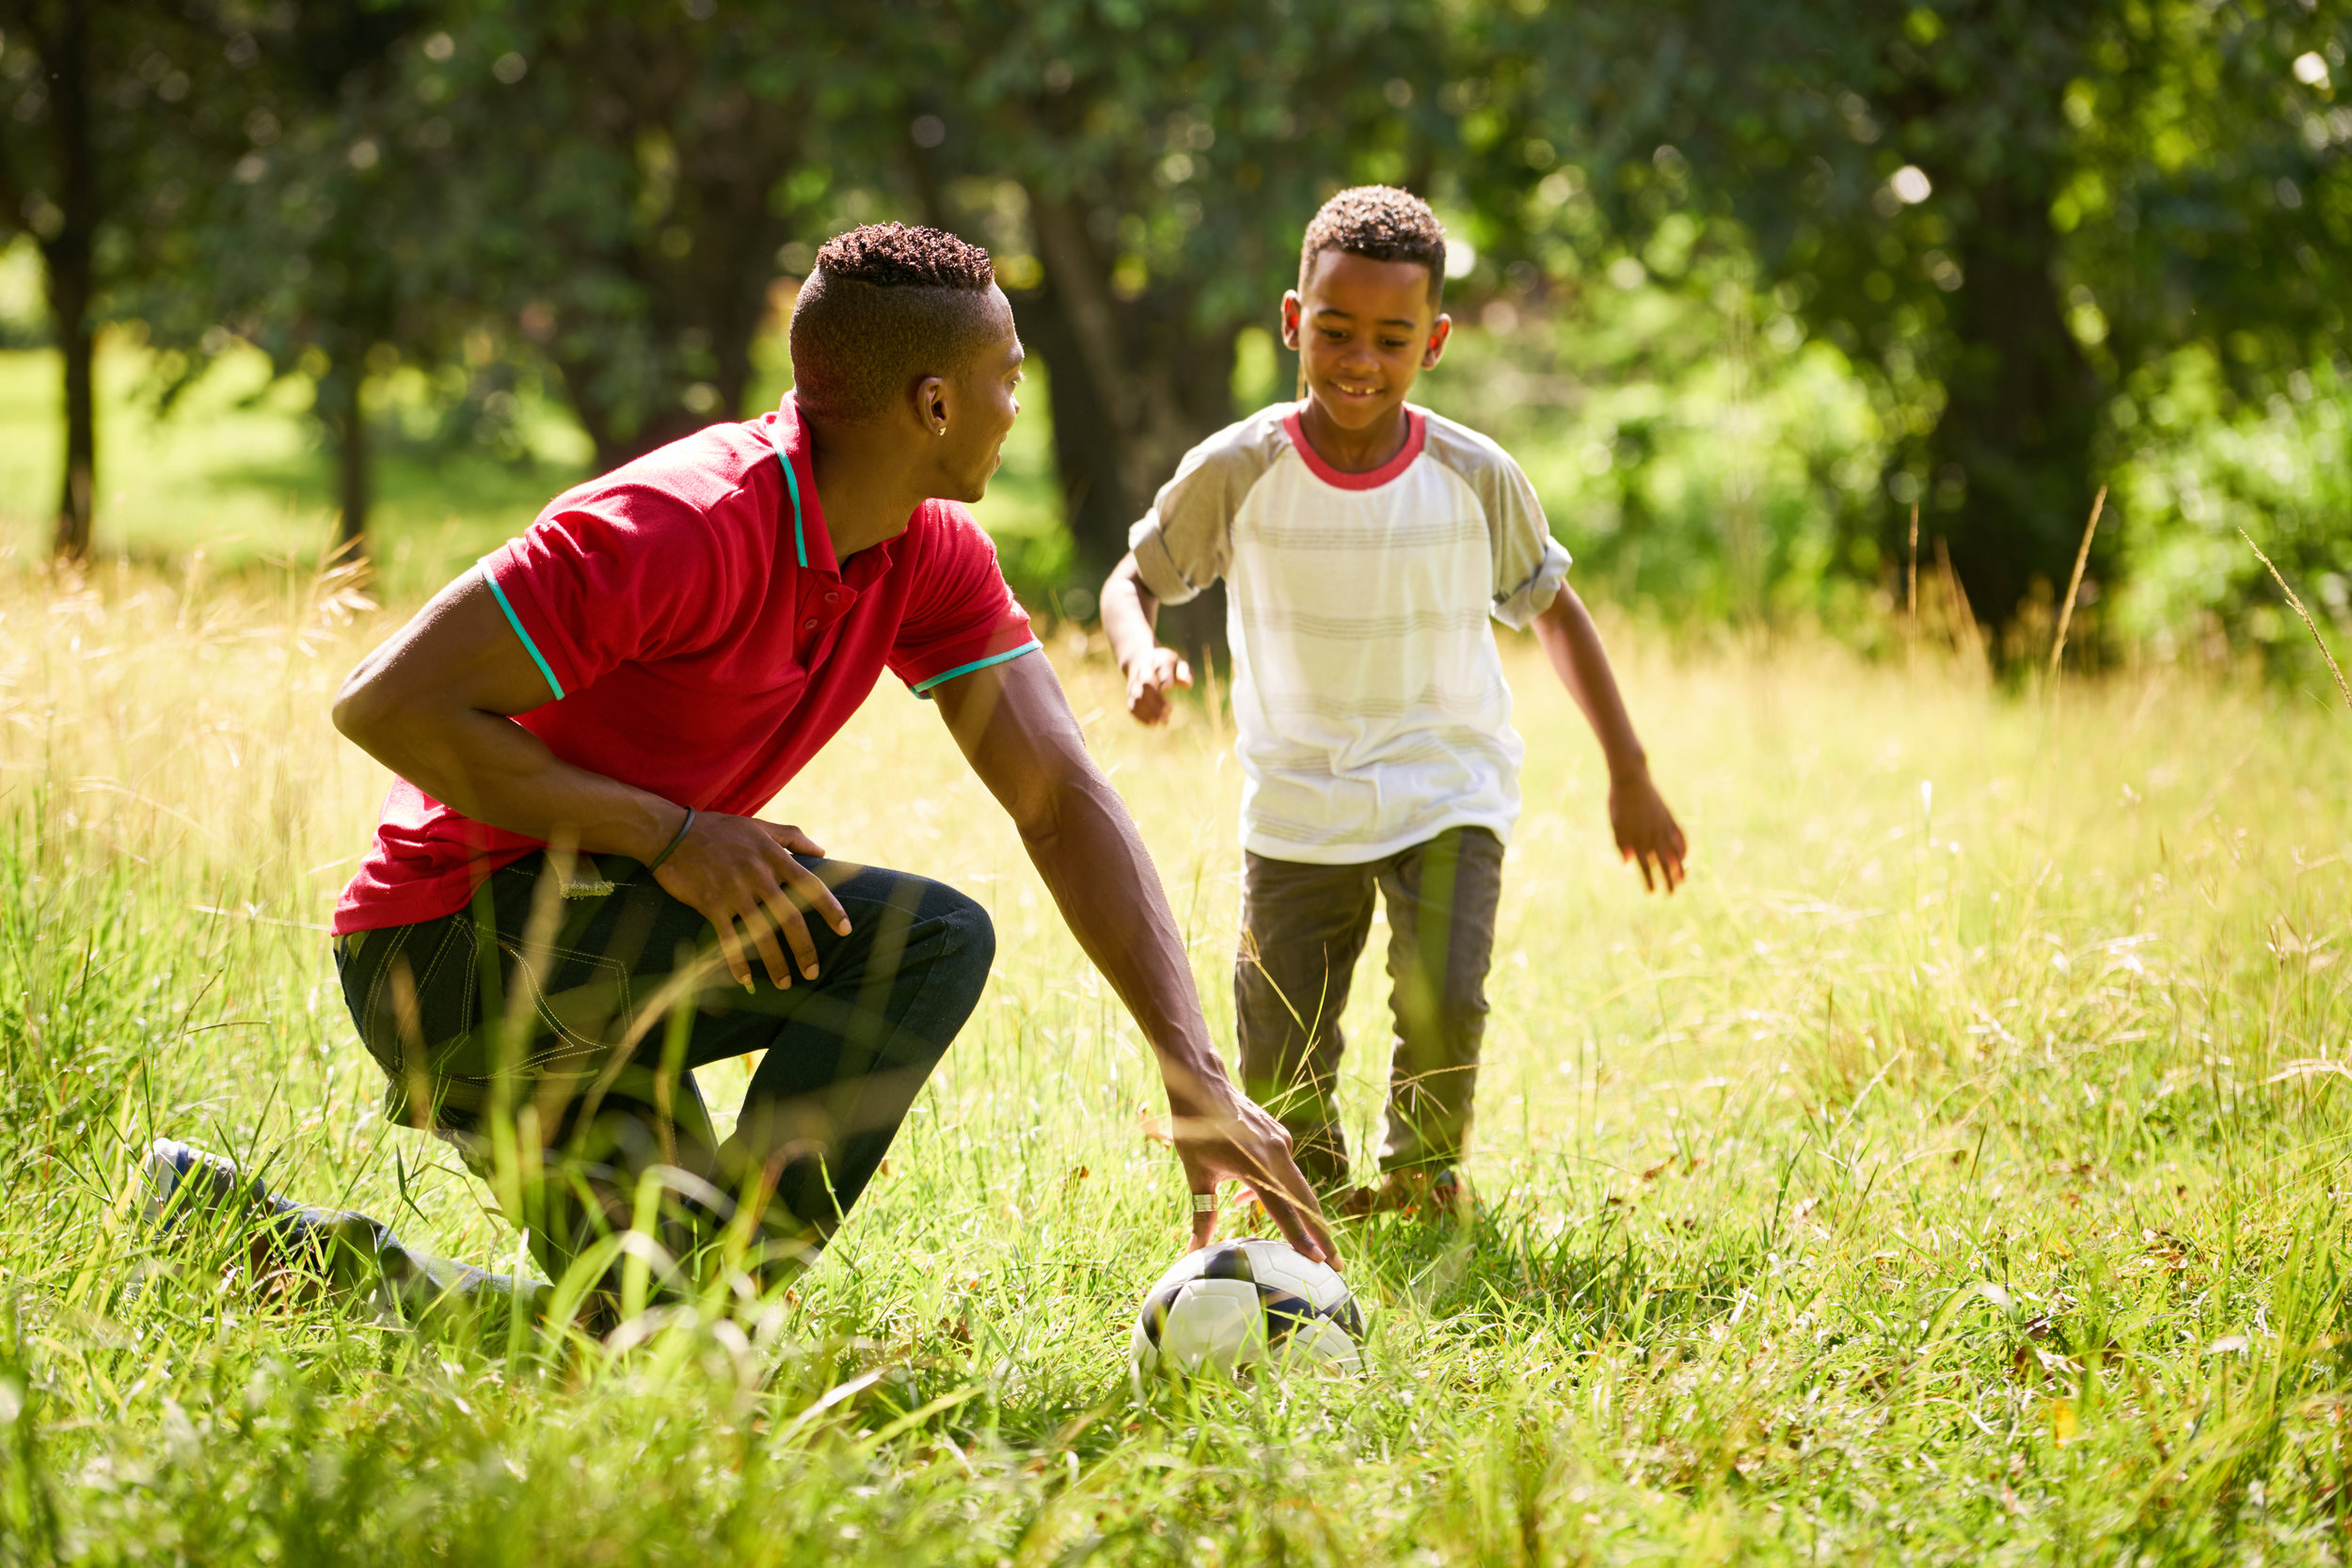 sport-practice-with-father-teaching-son-how-to-P6B4PCA.jpg